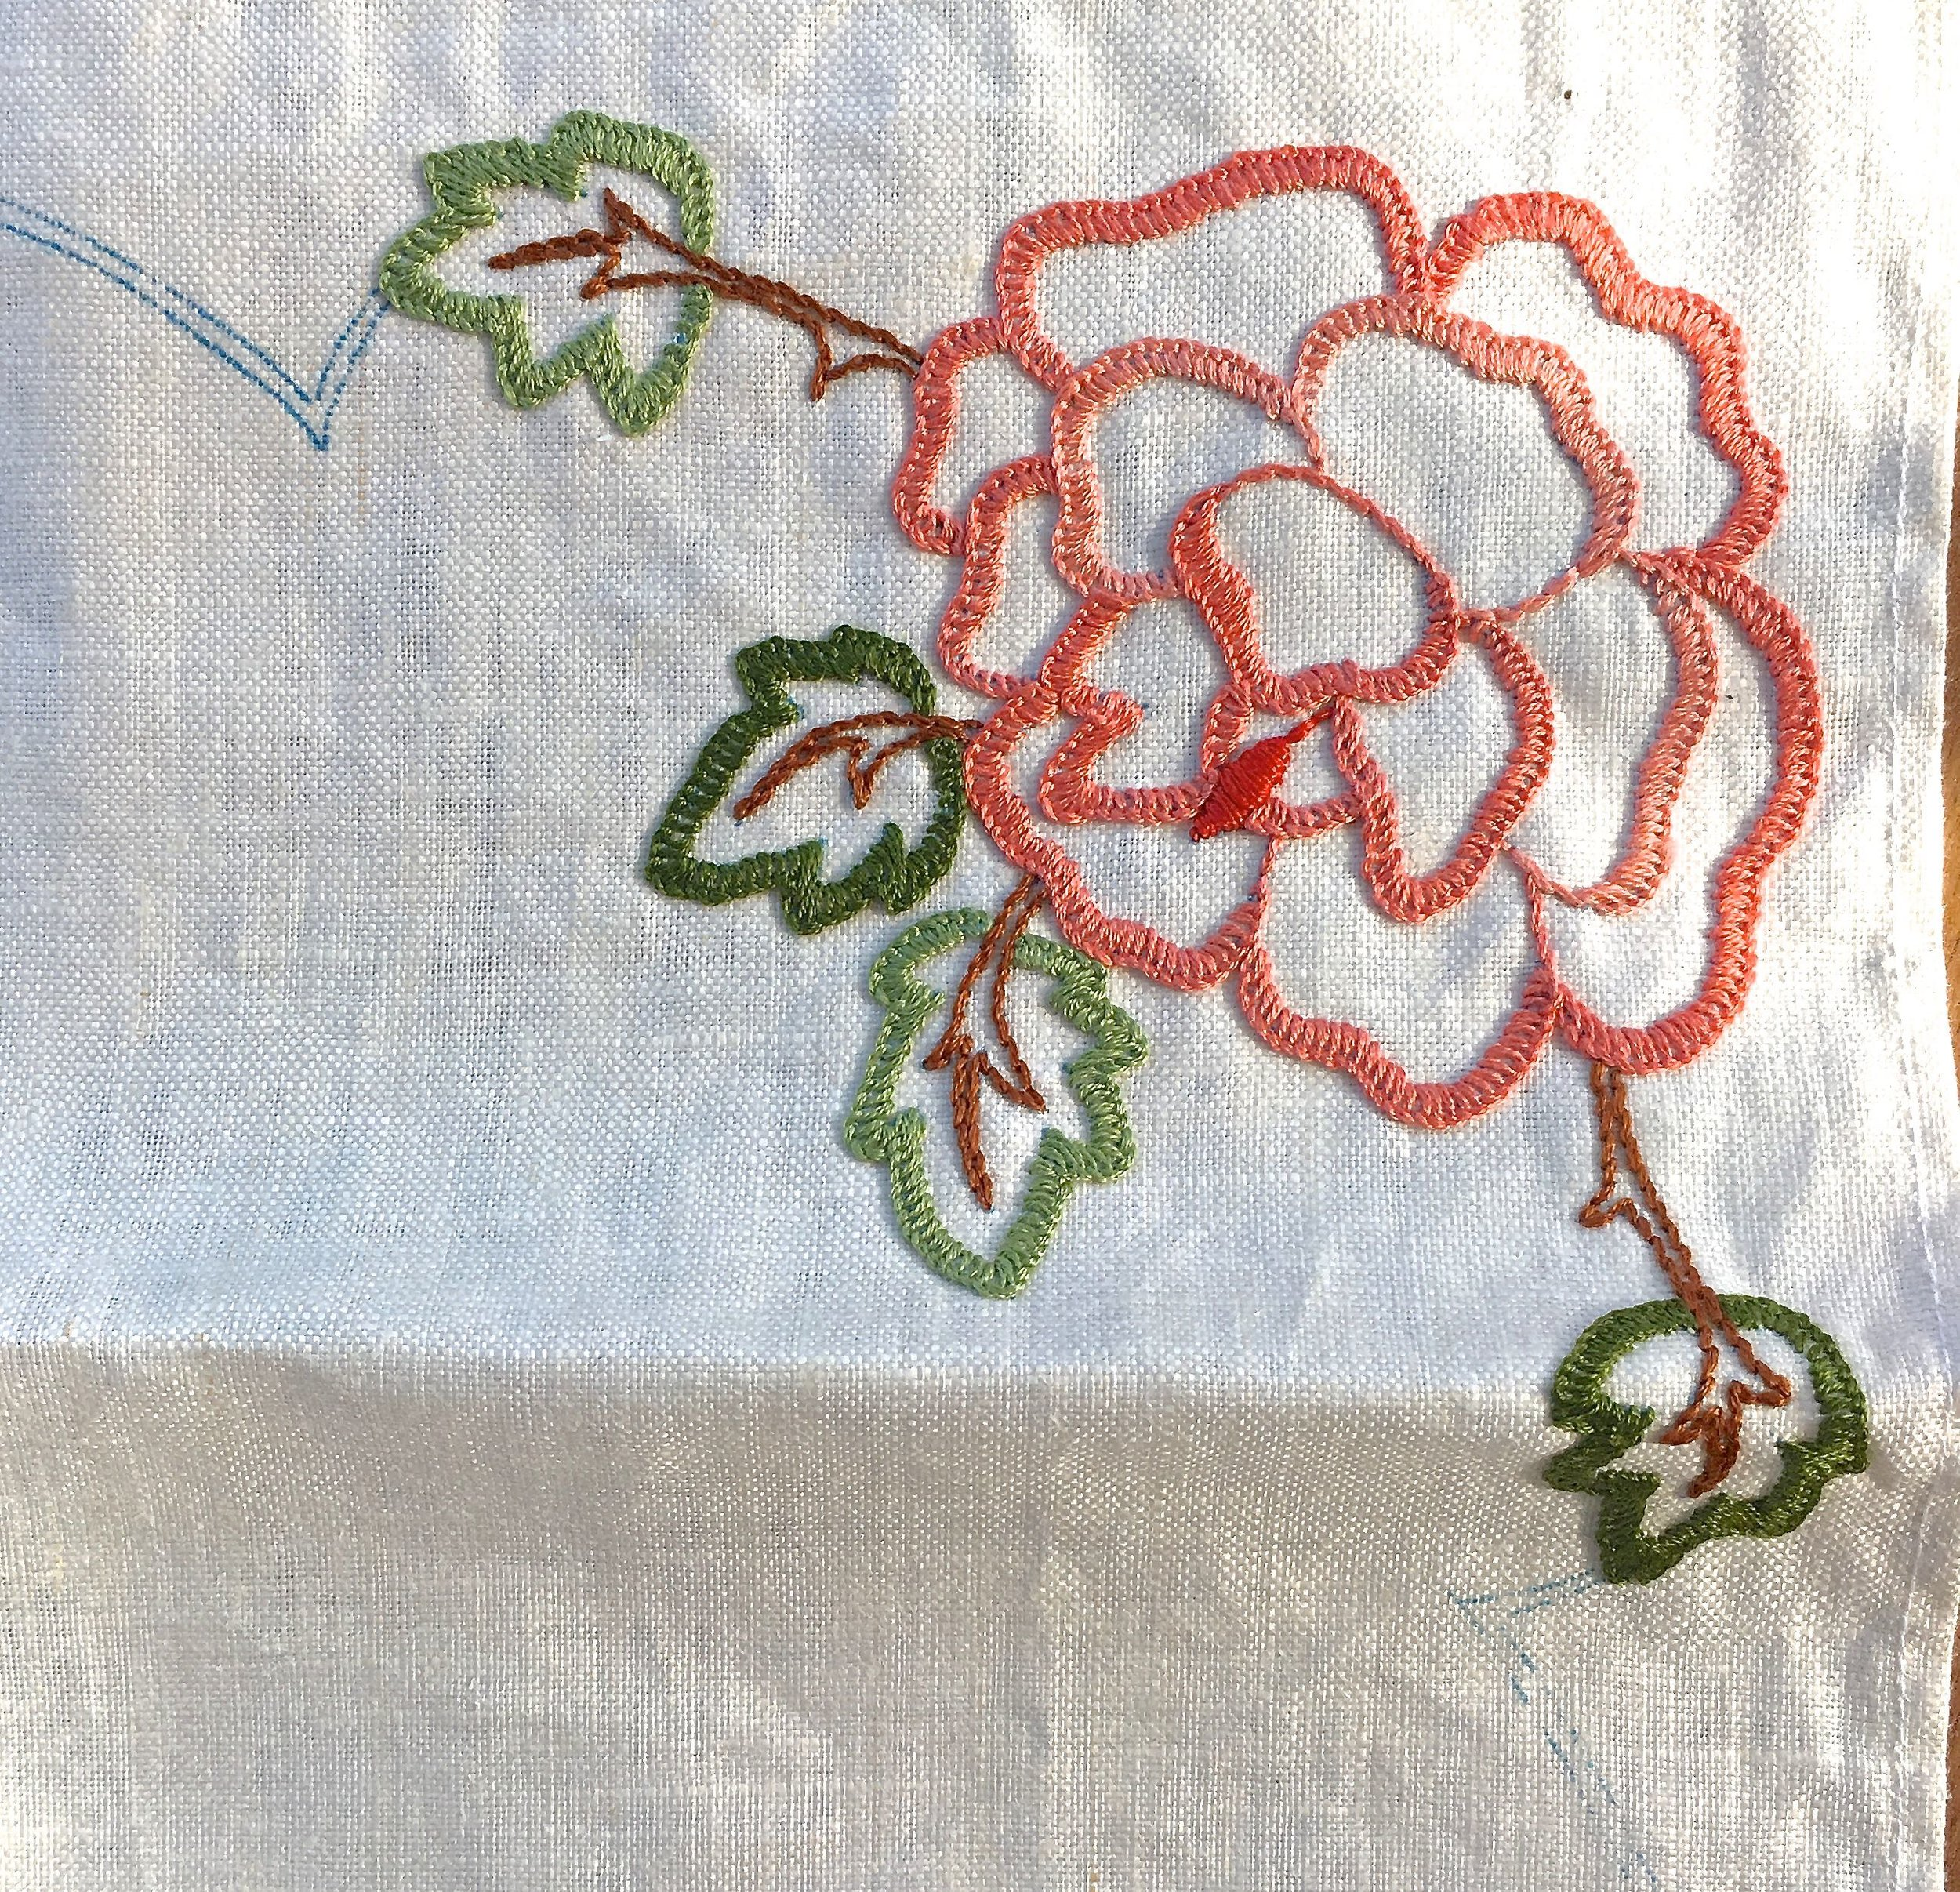 My linen tablecloth embroidery project - a completed corner